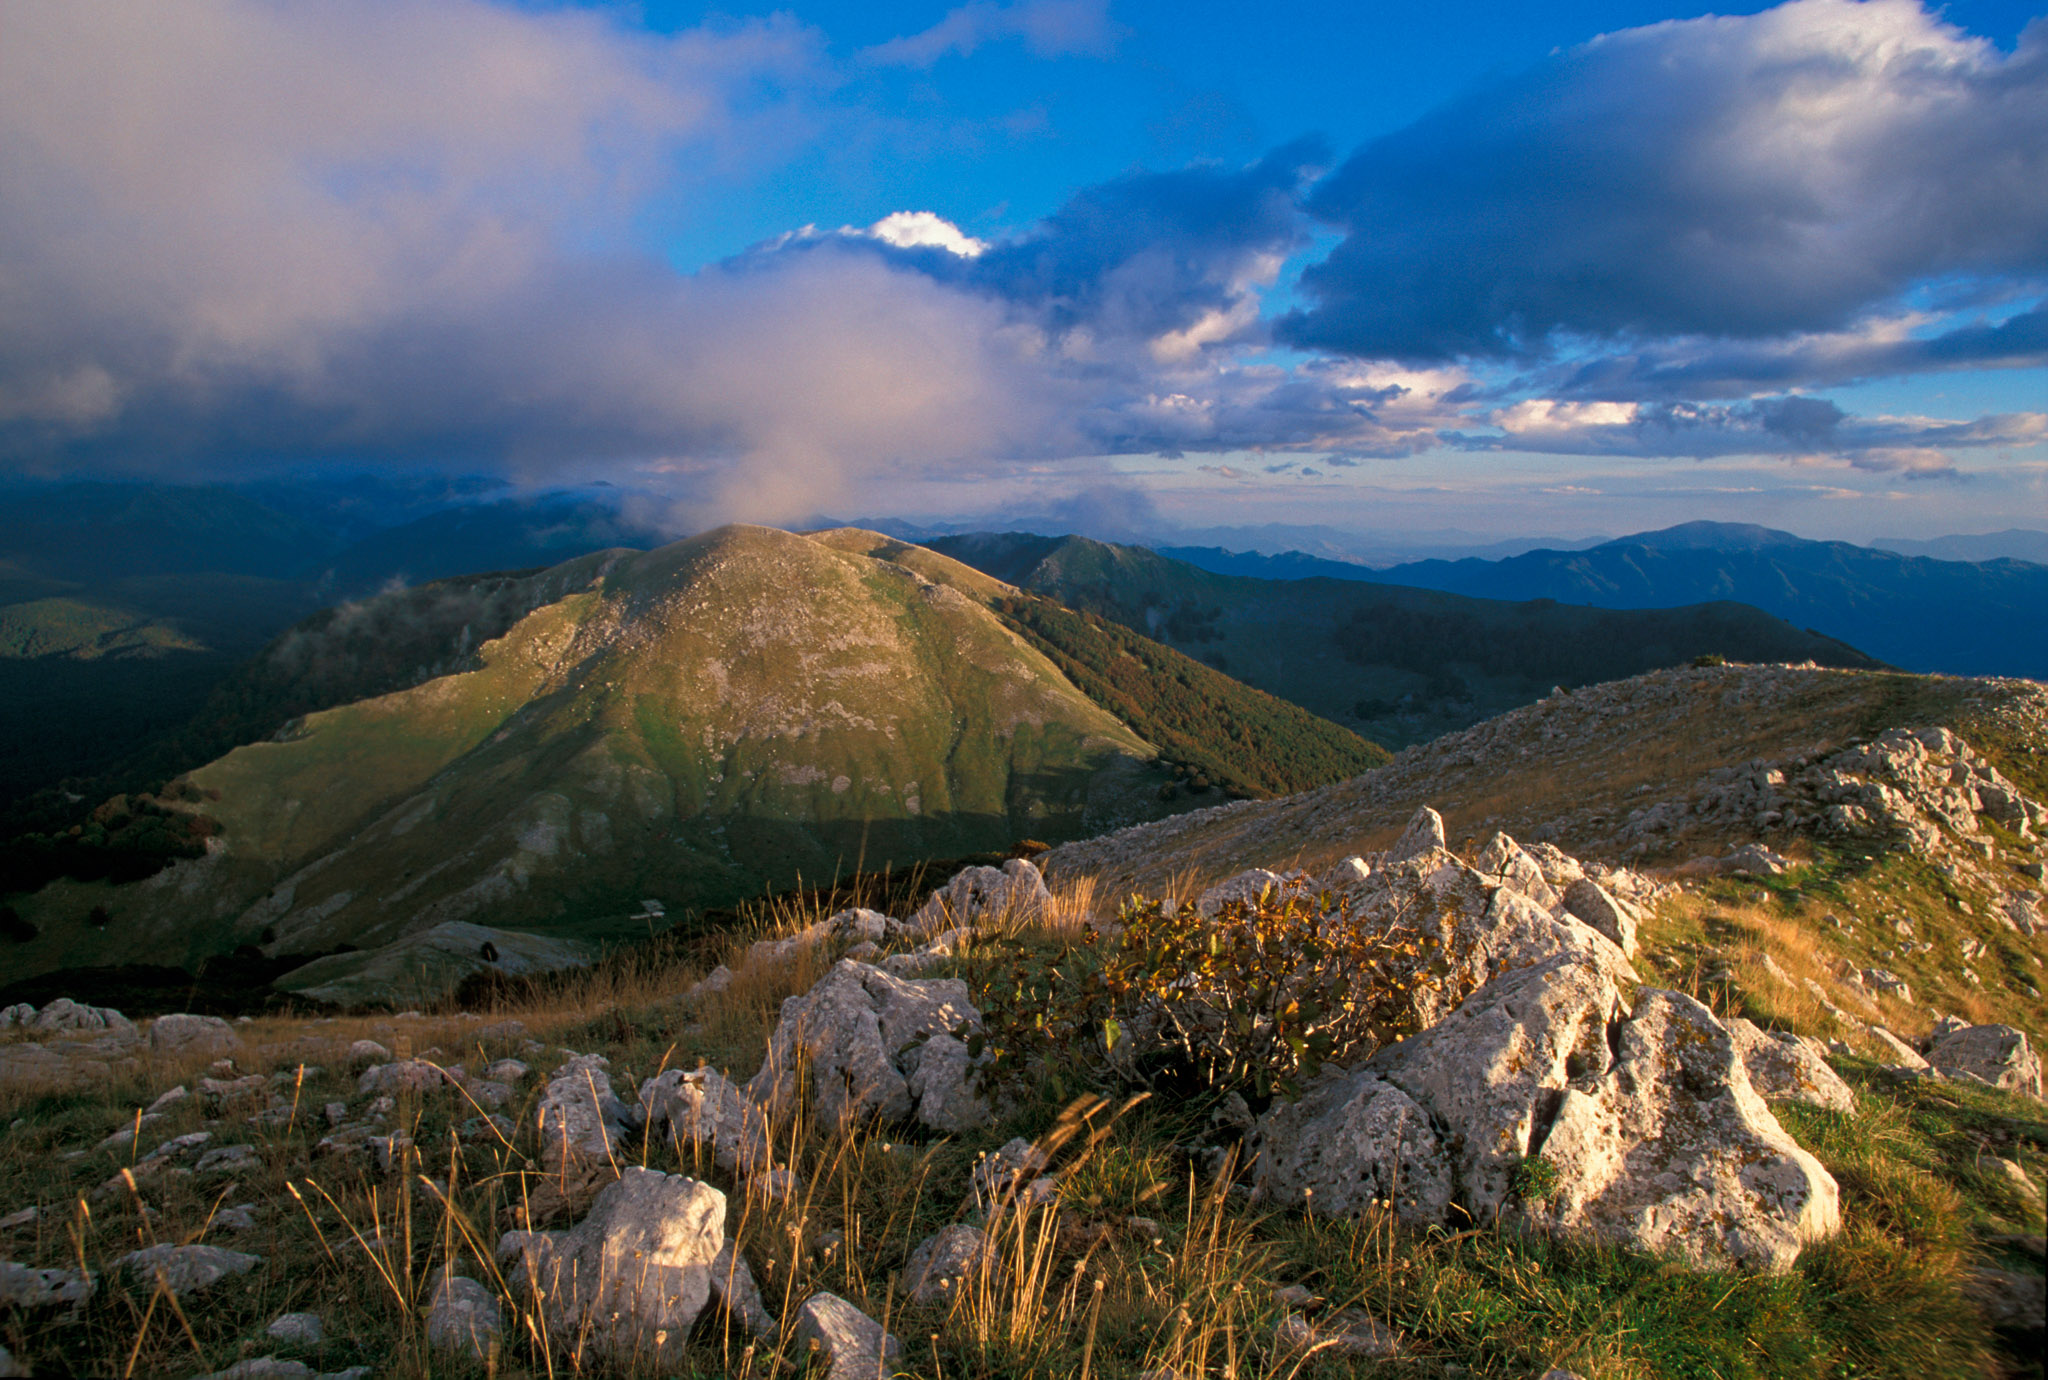 The Rewilding Apennines team, together with their new partner Salviamo l'Orso, will work together on rewilding, wildlife comeback and the building of a local nature-based economy.